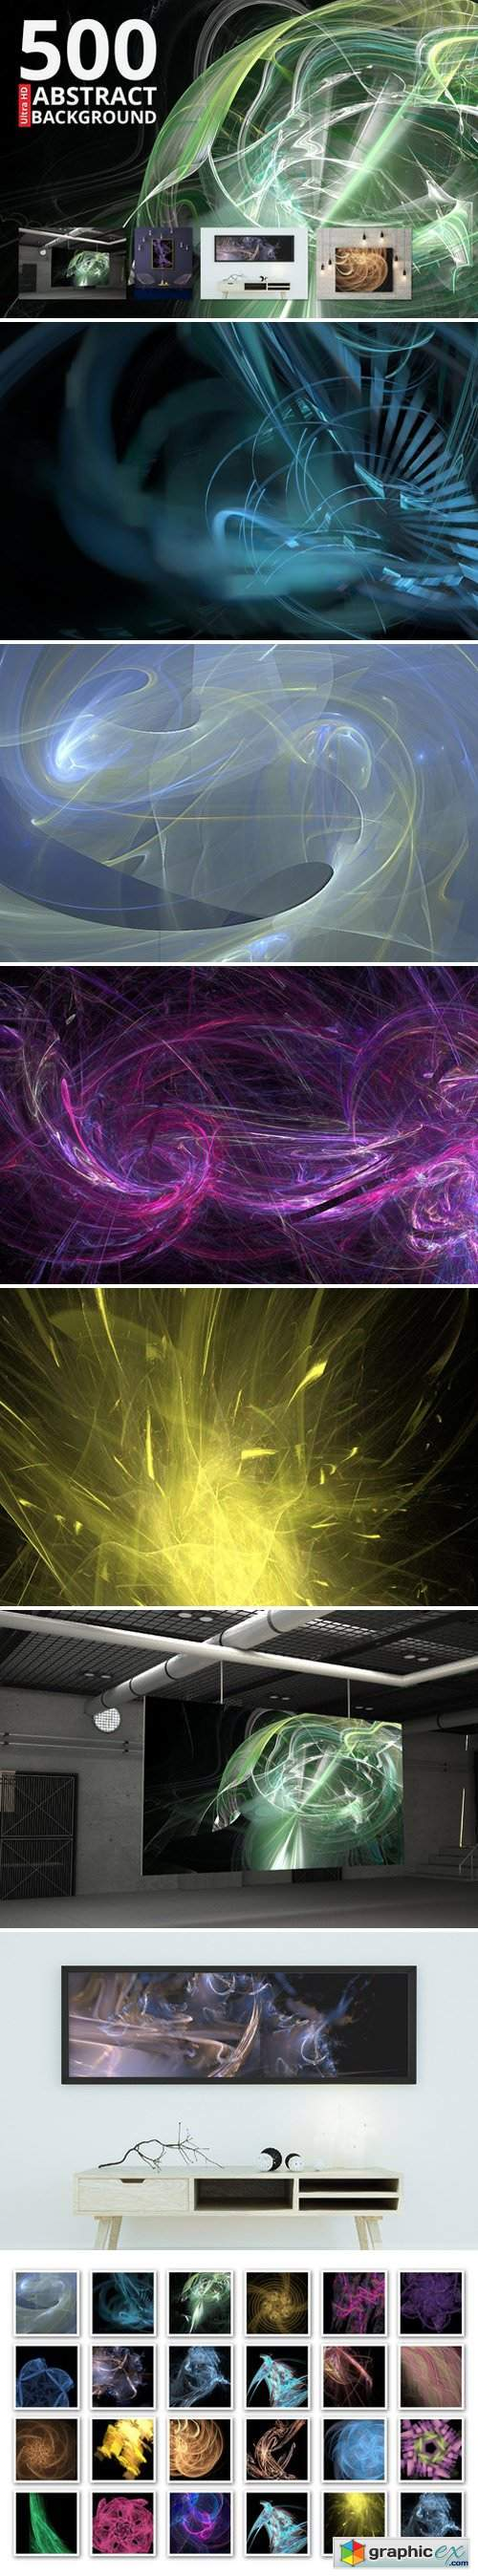 500 abstract backgrounds